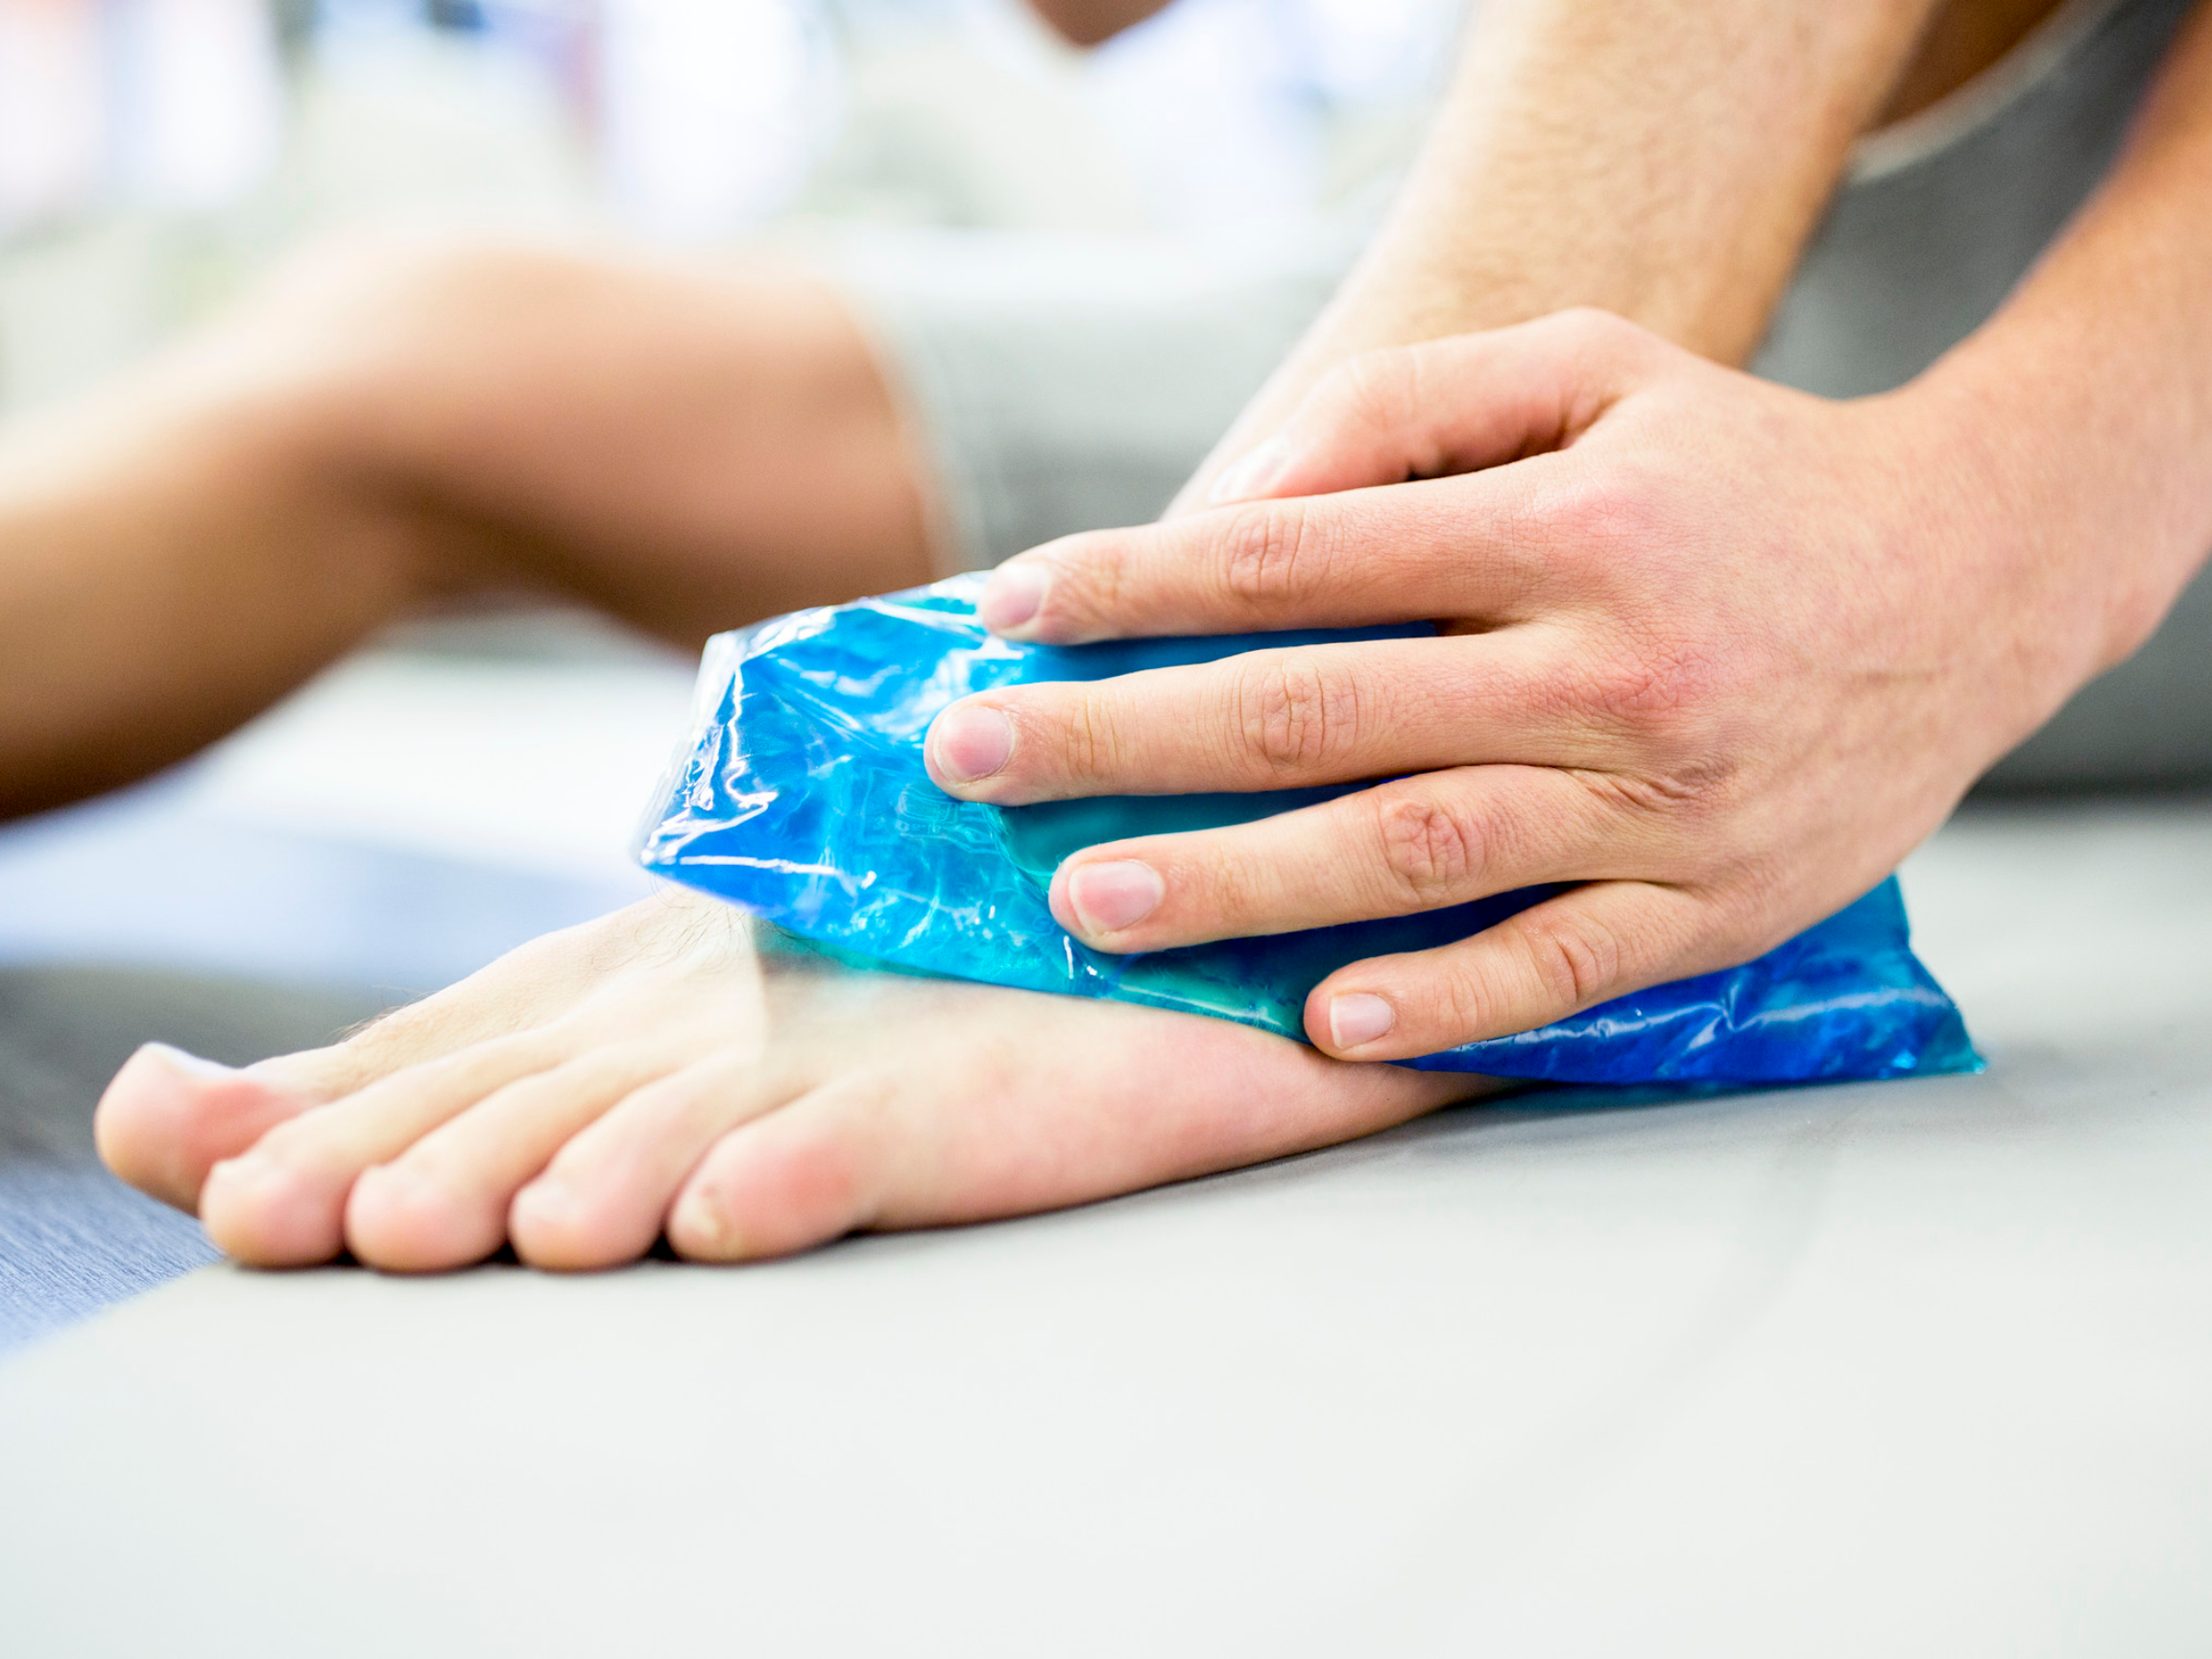 Person holding ice pack on ankle injury